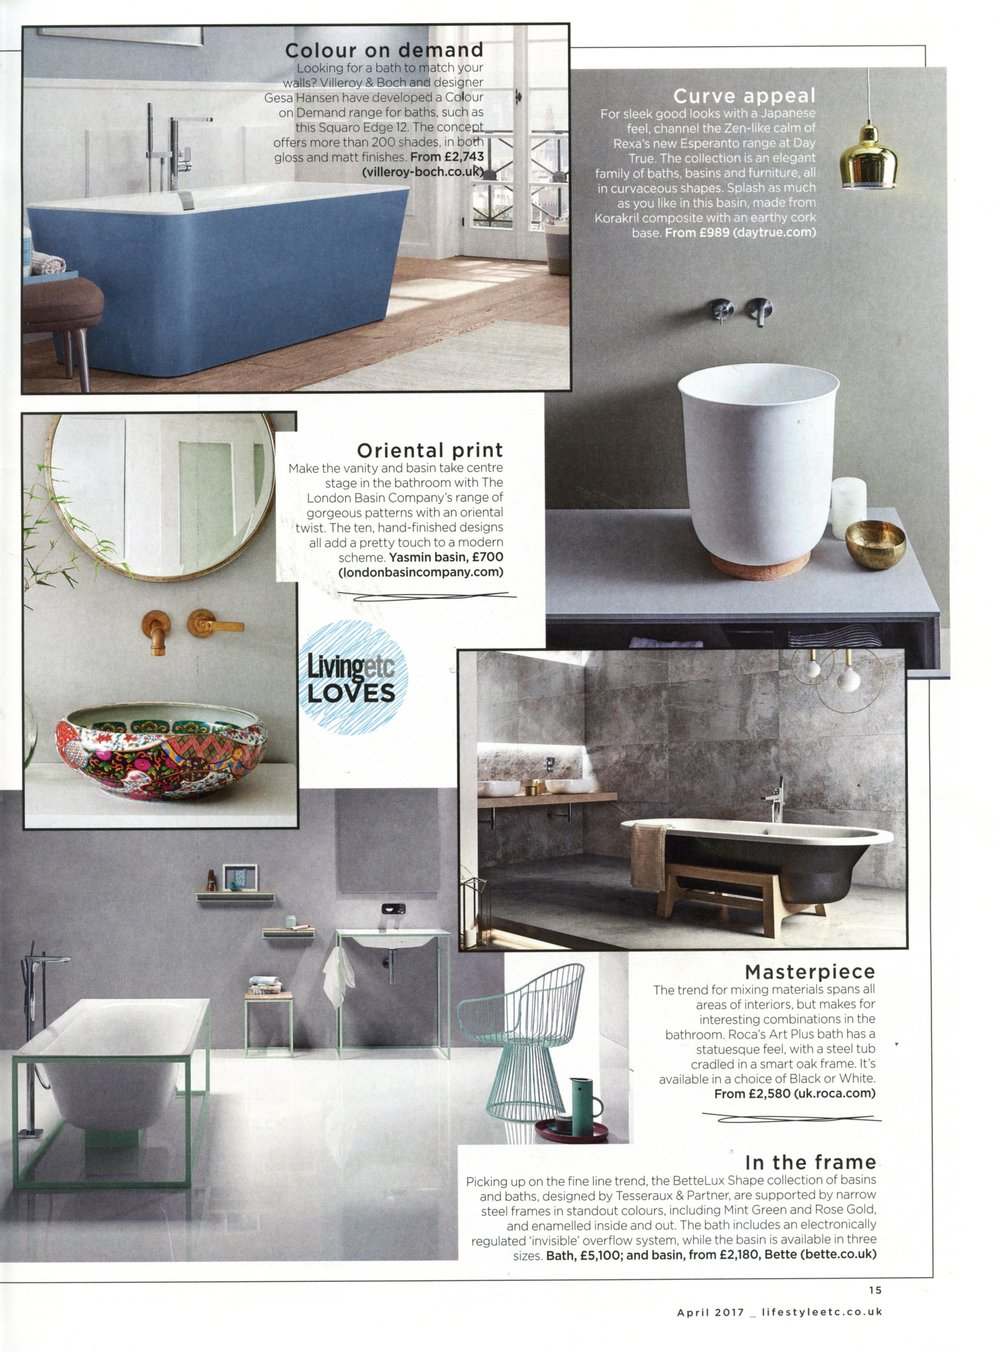 Living etc Bathroomsetc Supplement April 2017 LBC.jpg